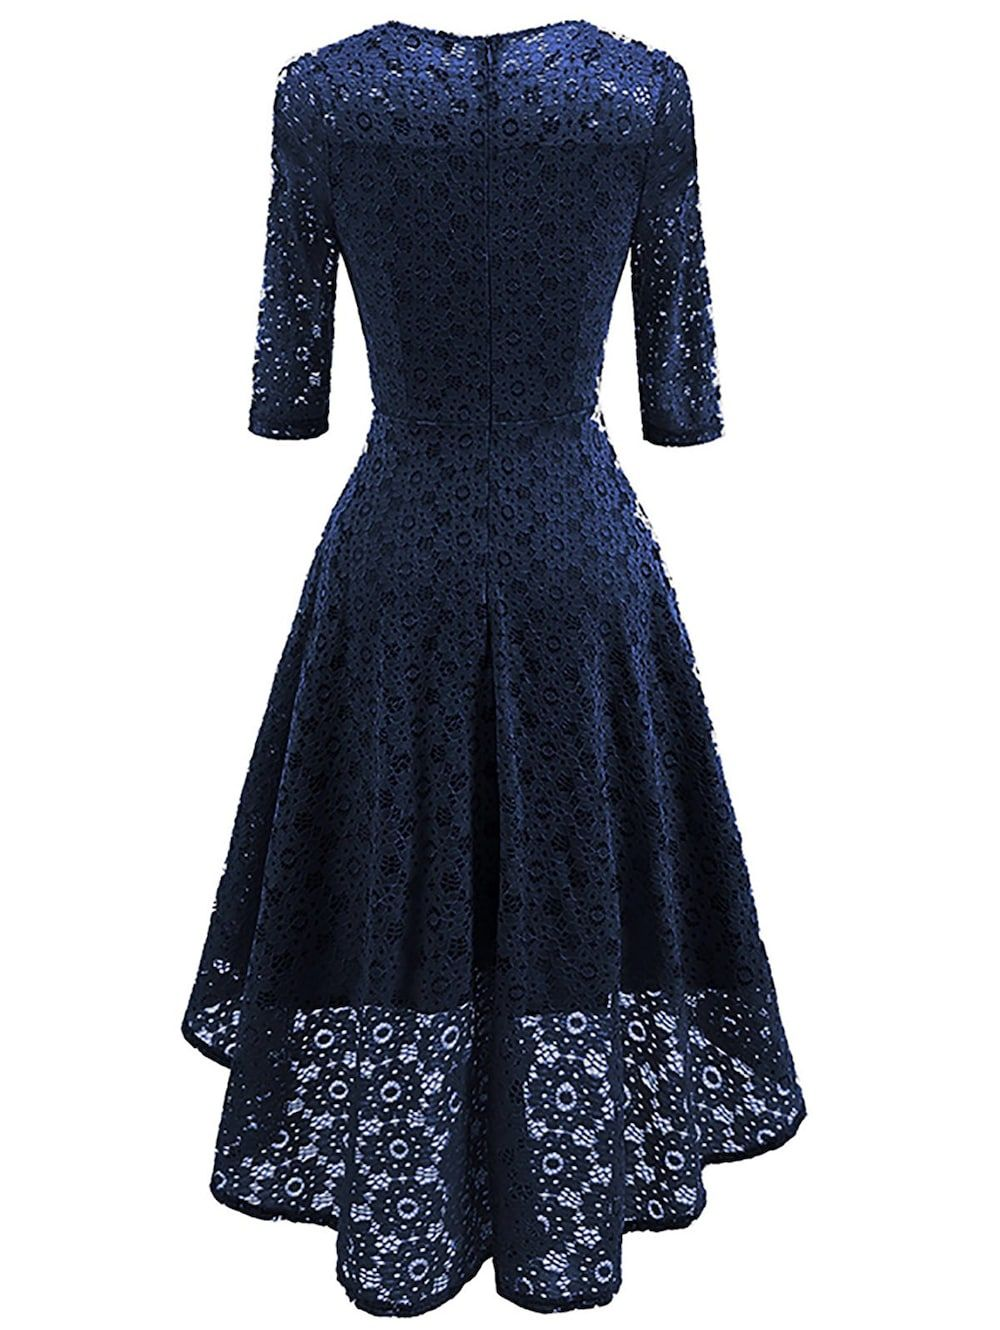 7c17d2a683d5 Lace Crochet High Low Midi A Line Dress - CERULEAN S